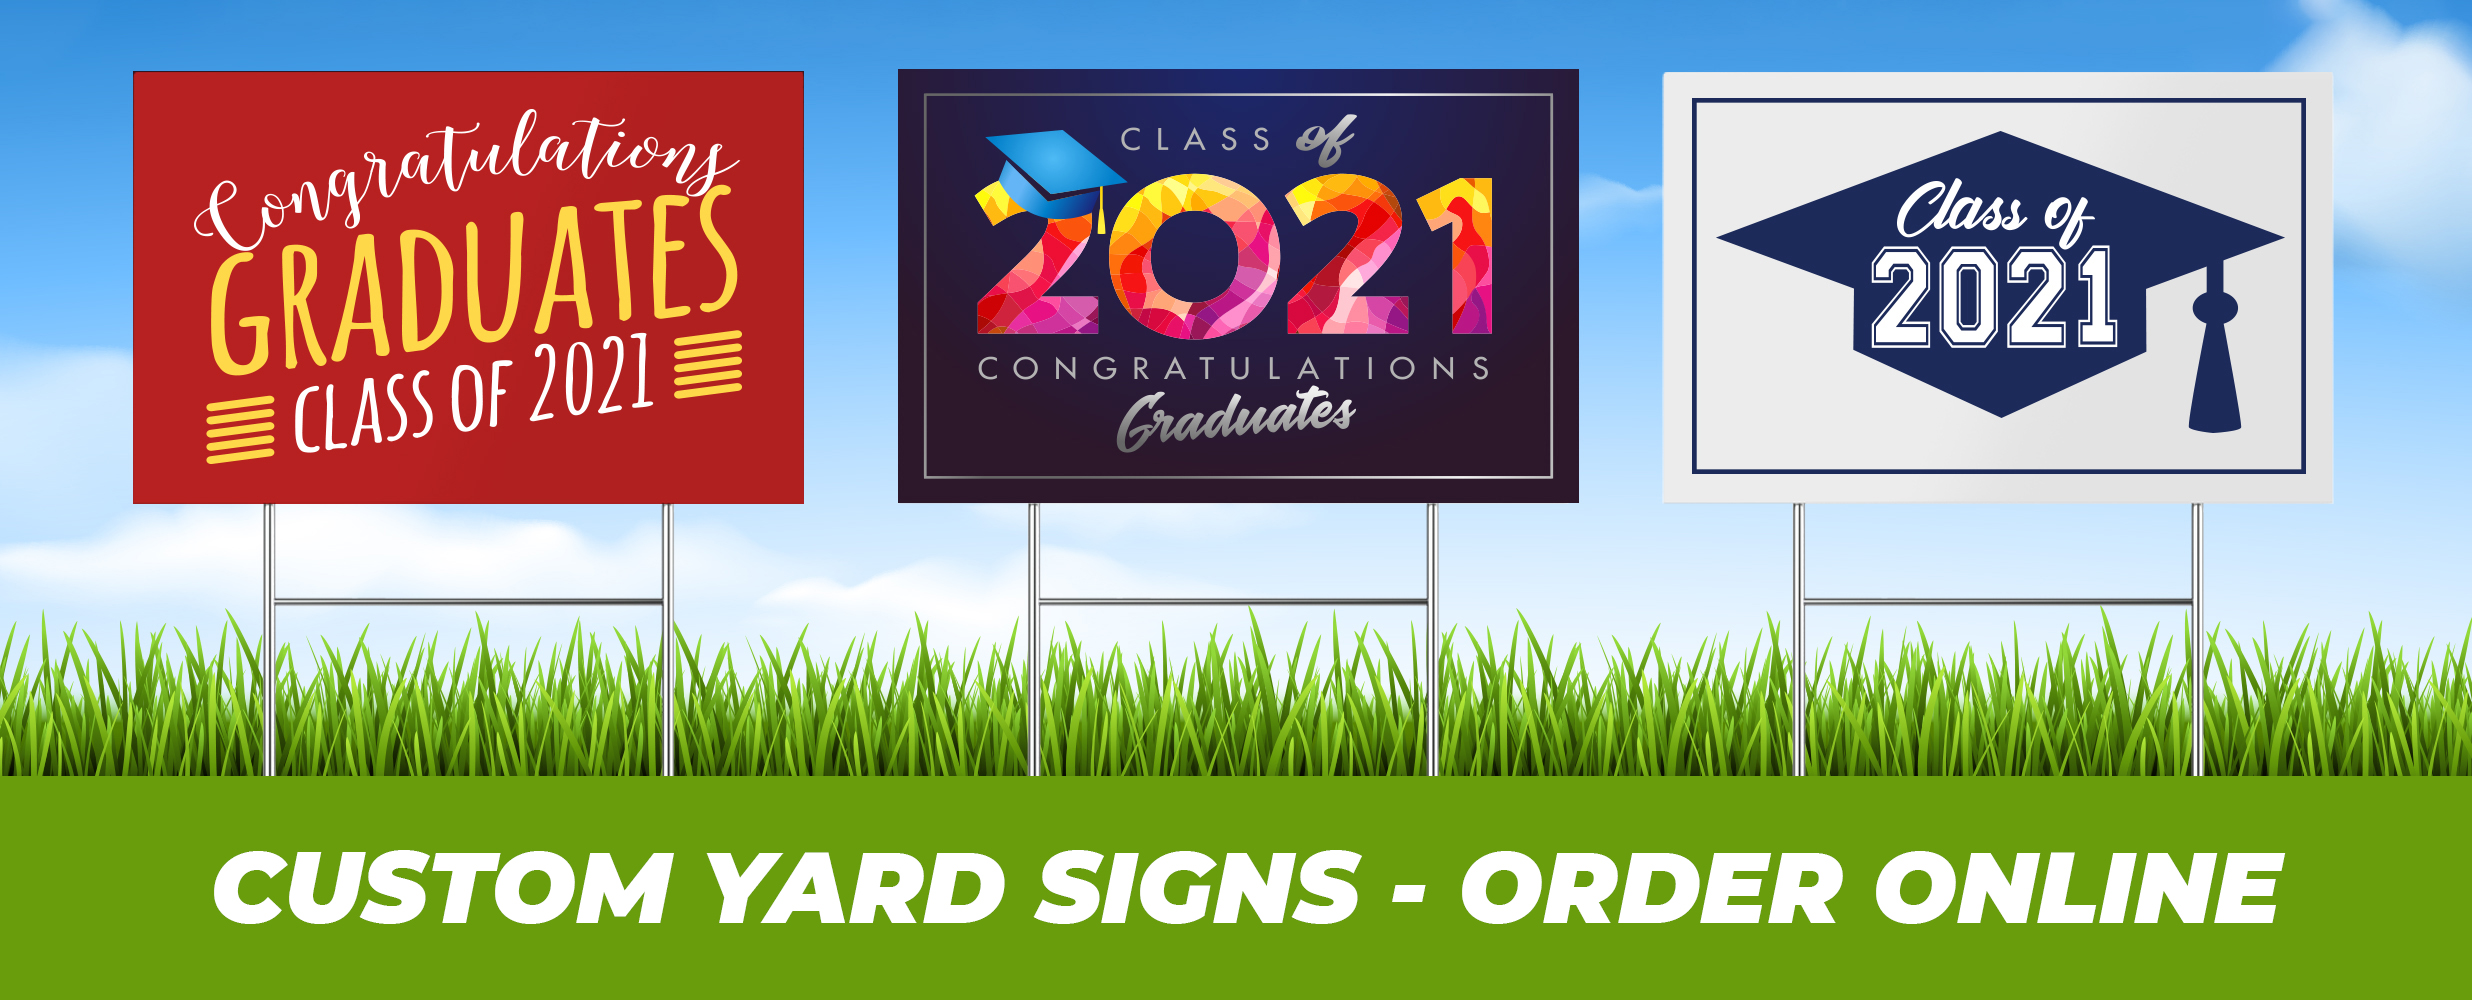 order custom yard signs online